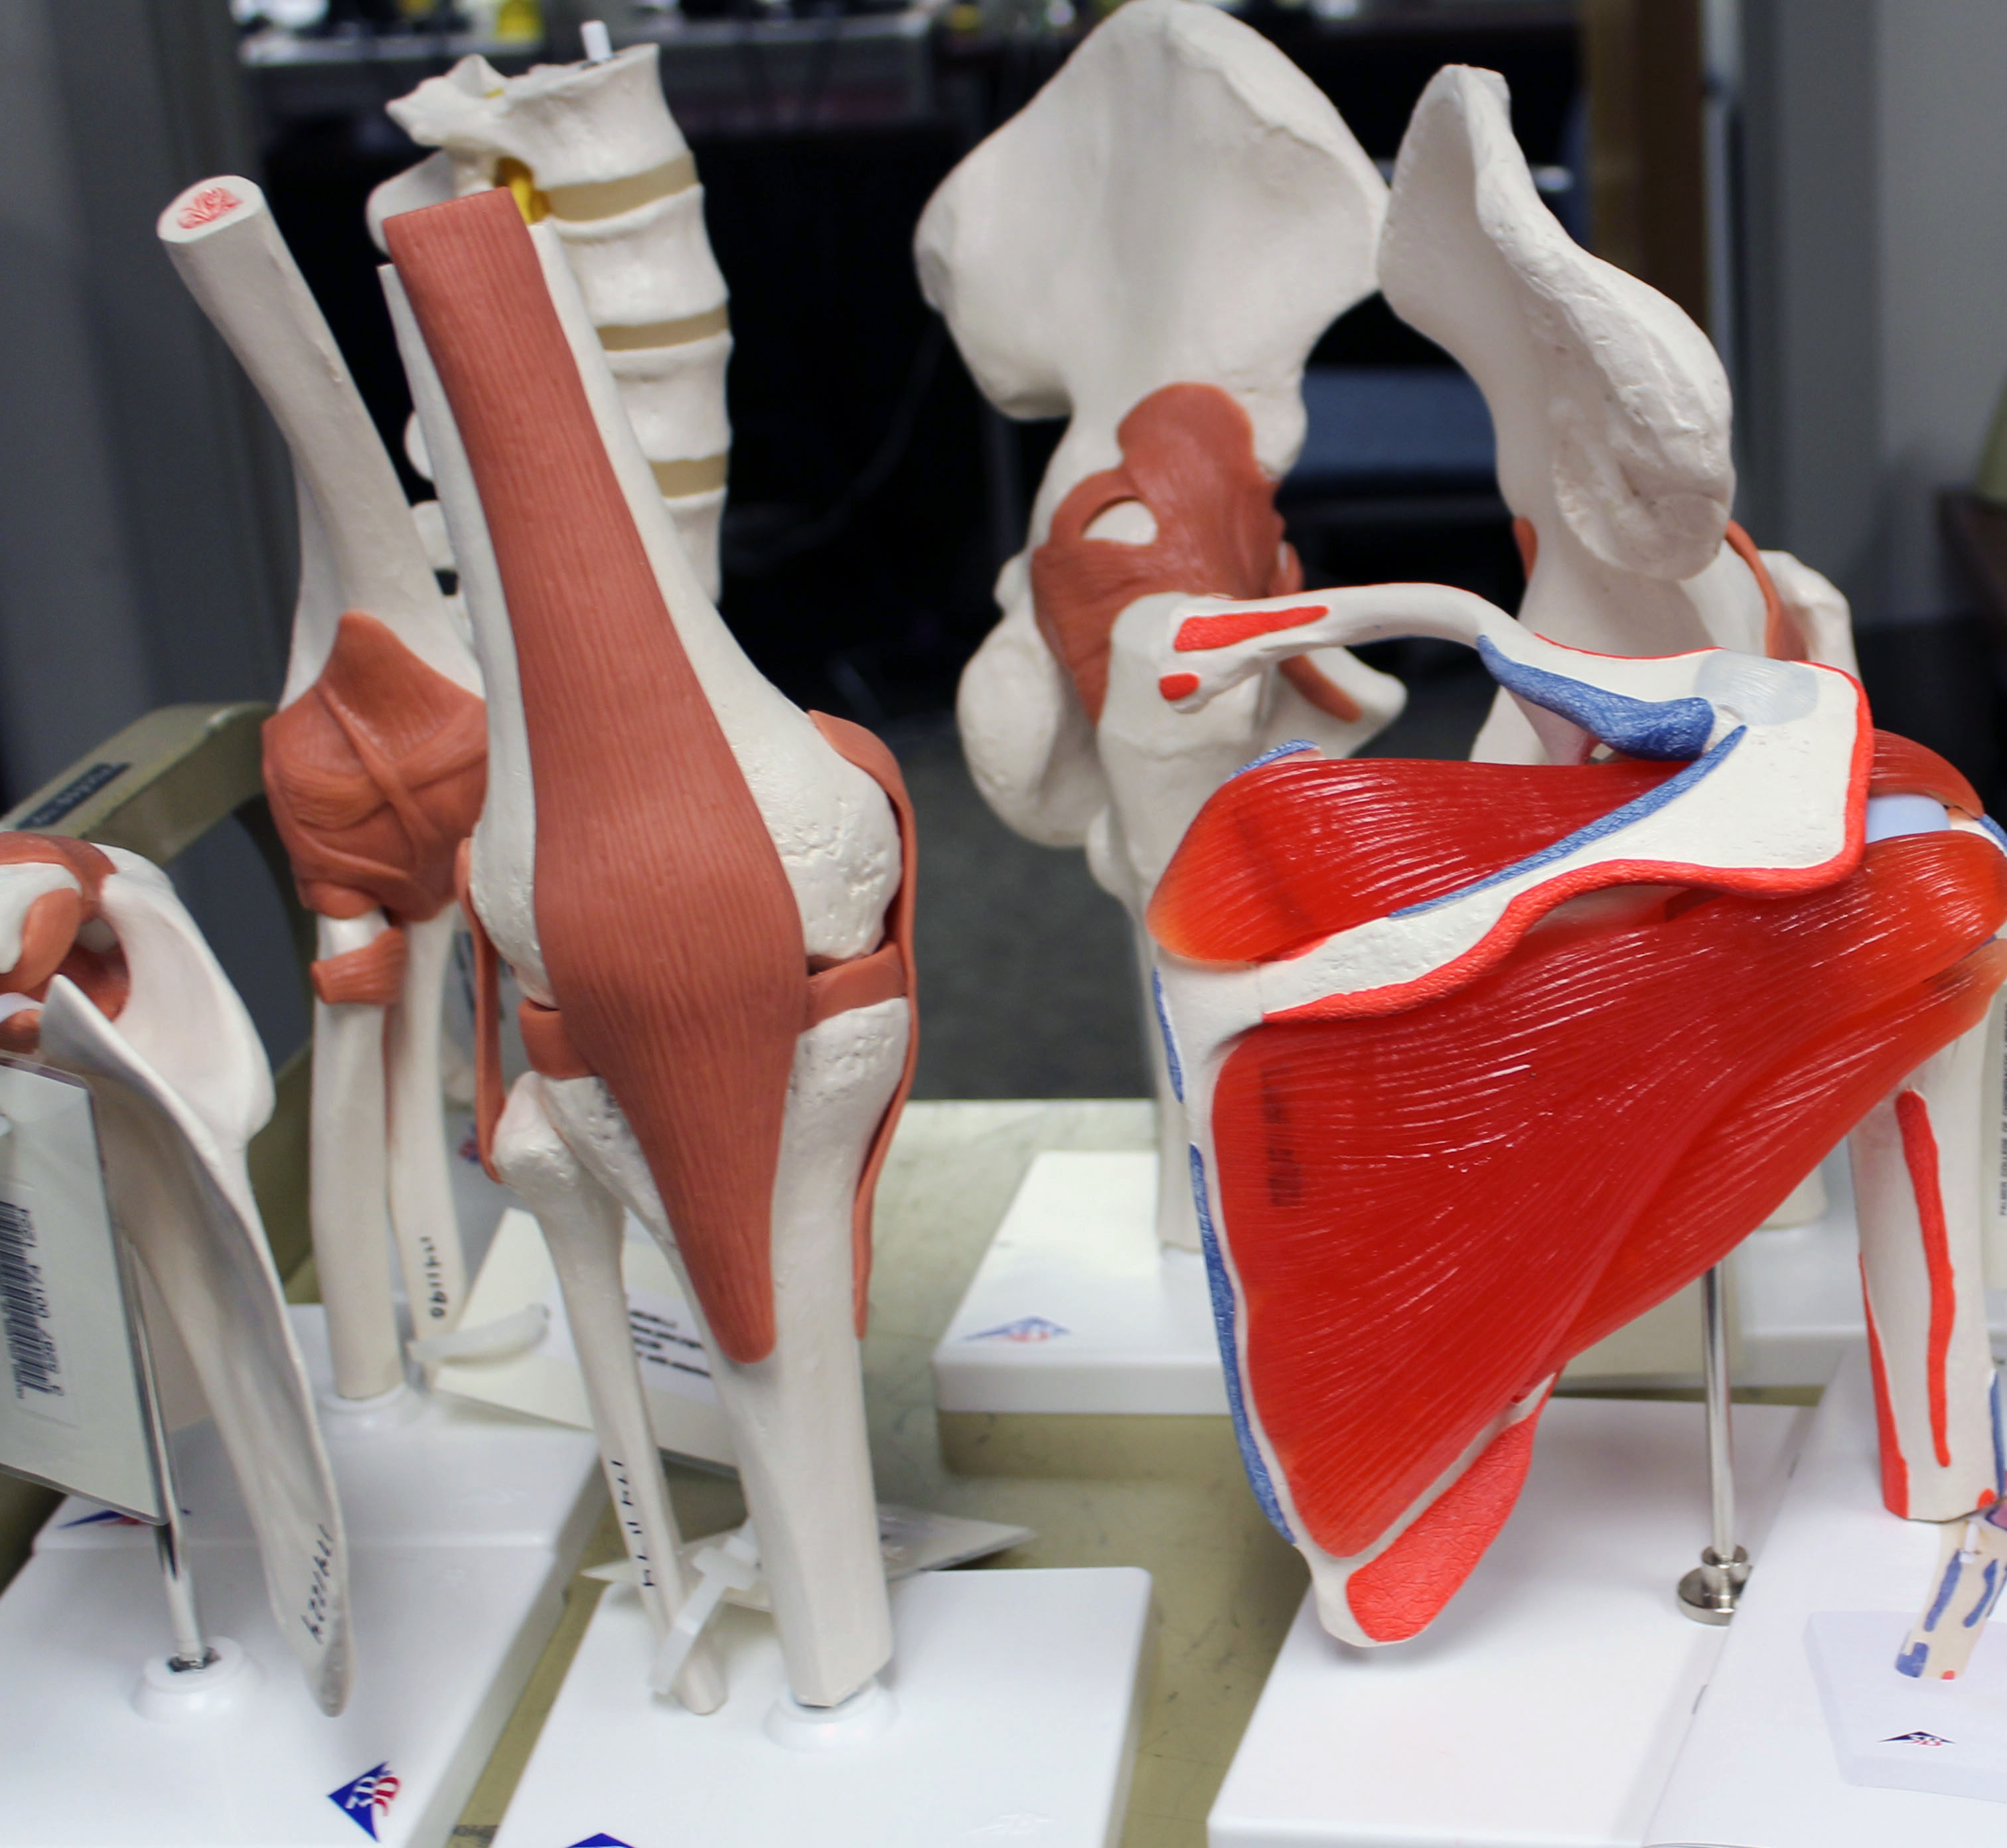 Flexible joints with ligament and muscle attachments